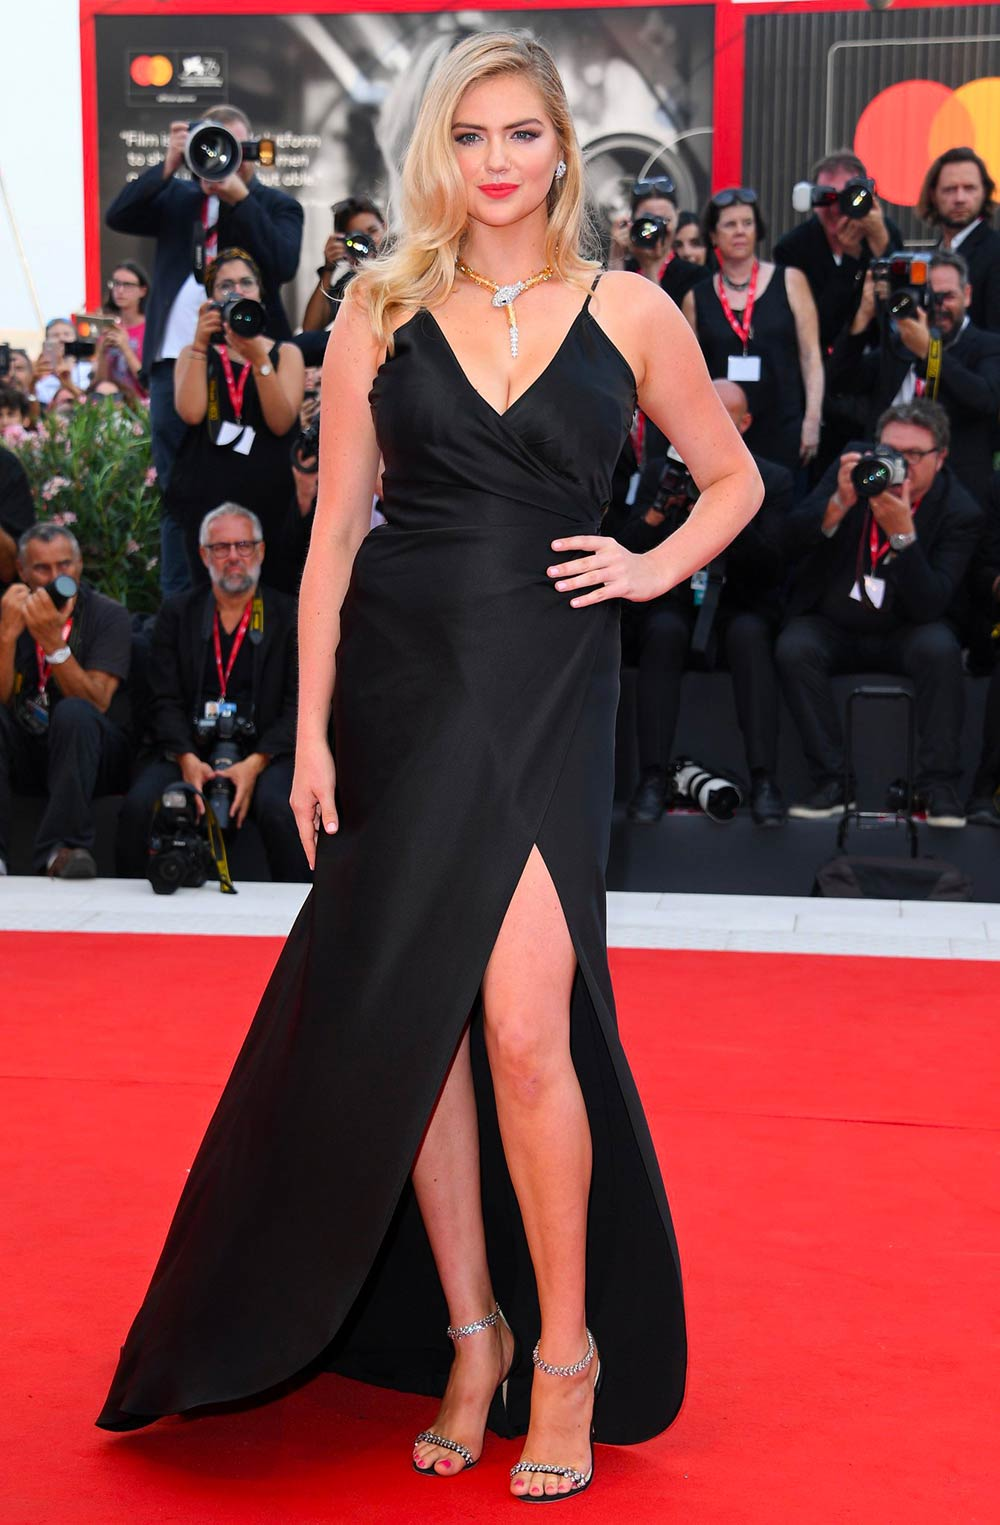 Venezia 2019 - Kate Upton - Hair Massimo Serini